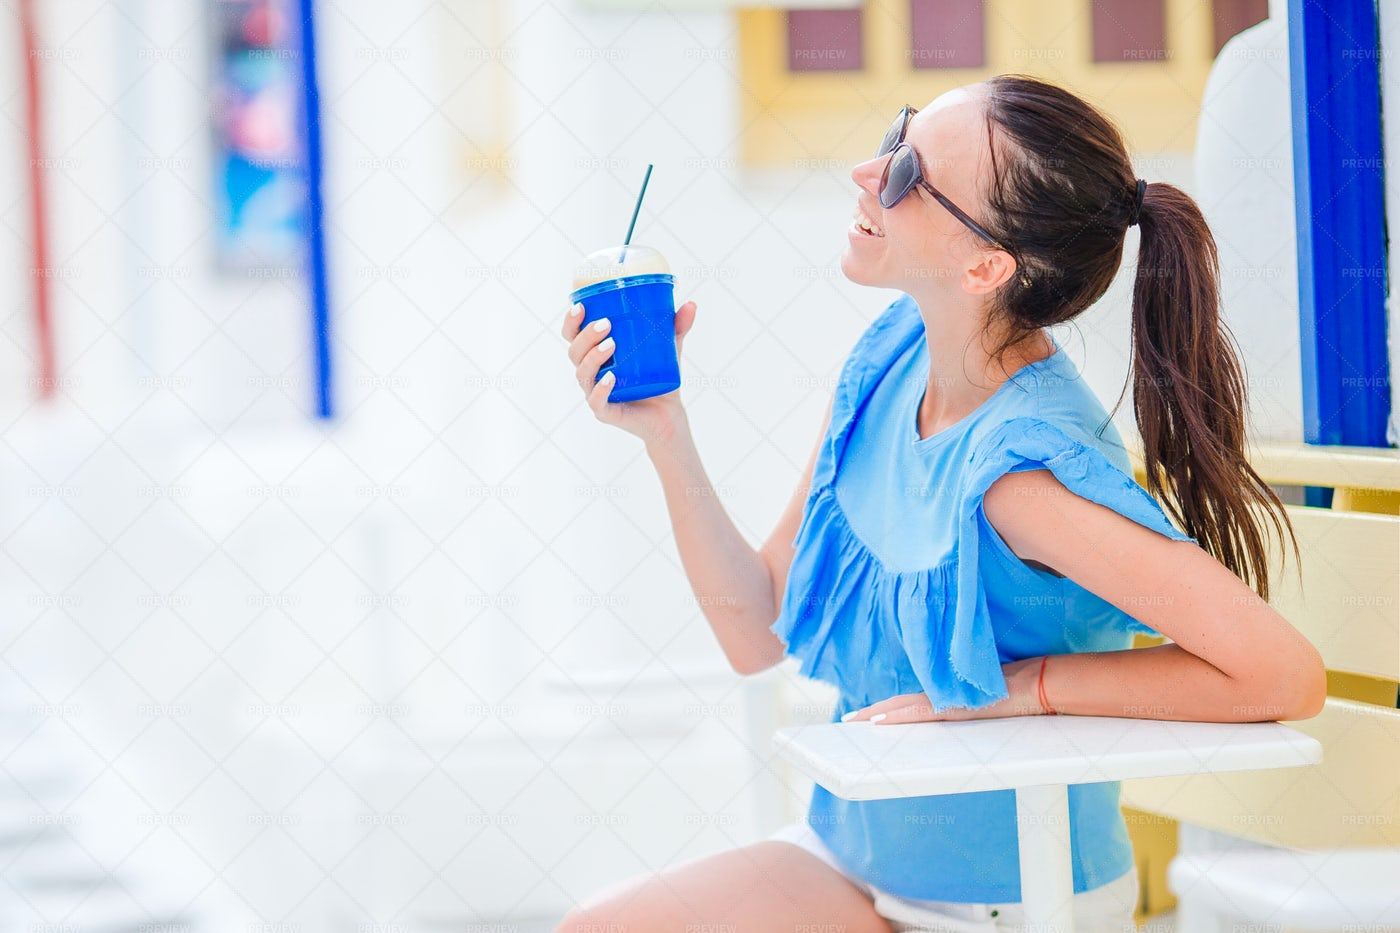 Vacationing Woman With Coffee: Stock Photos